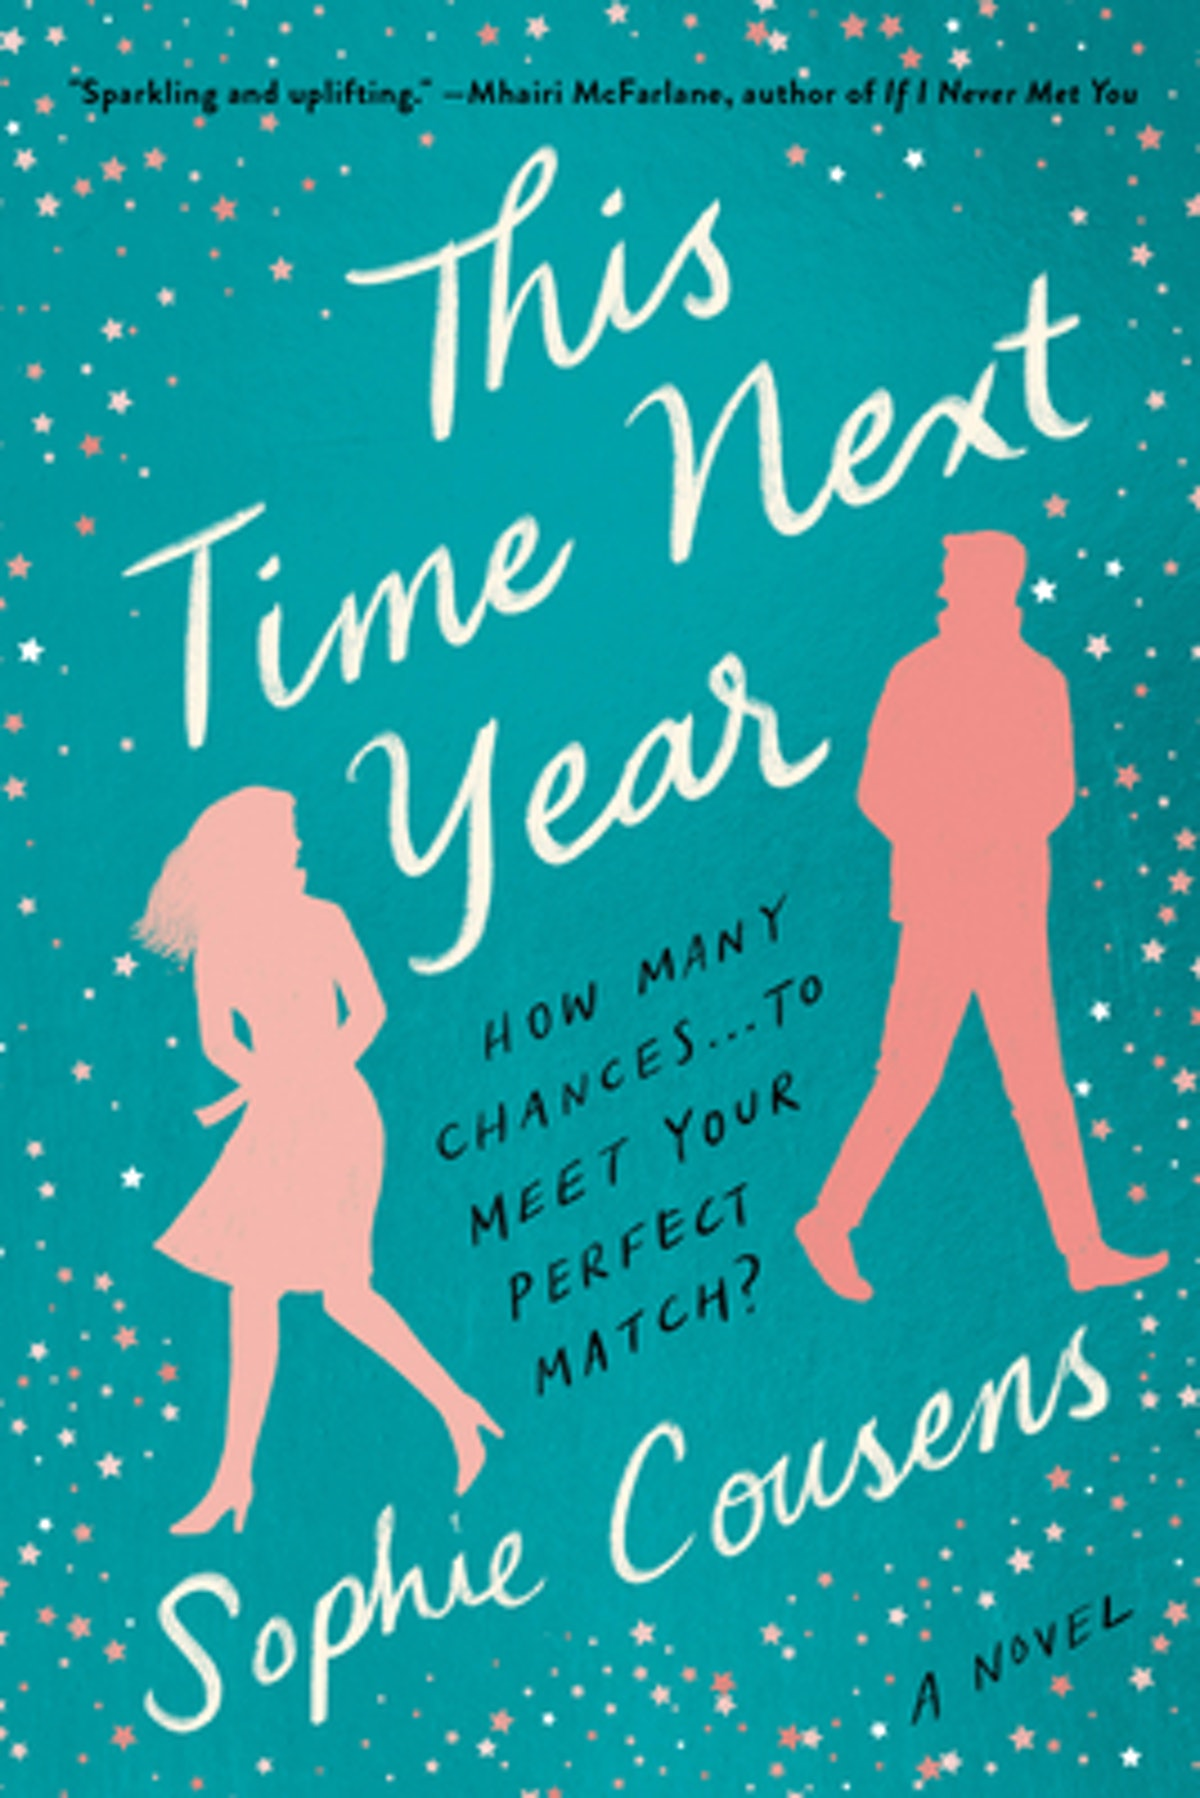 'This Time Next Year' by Sophie Cousens